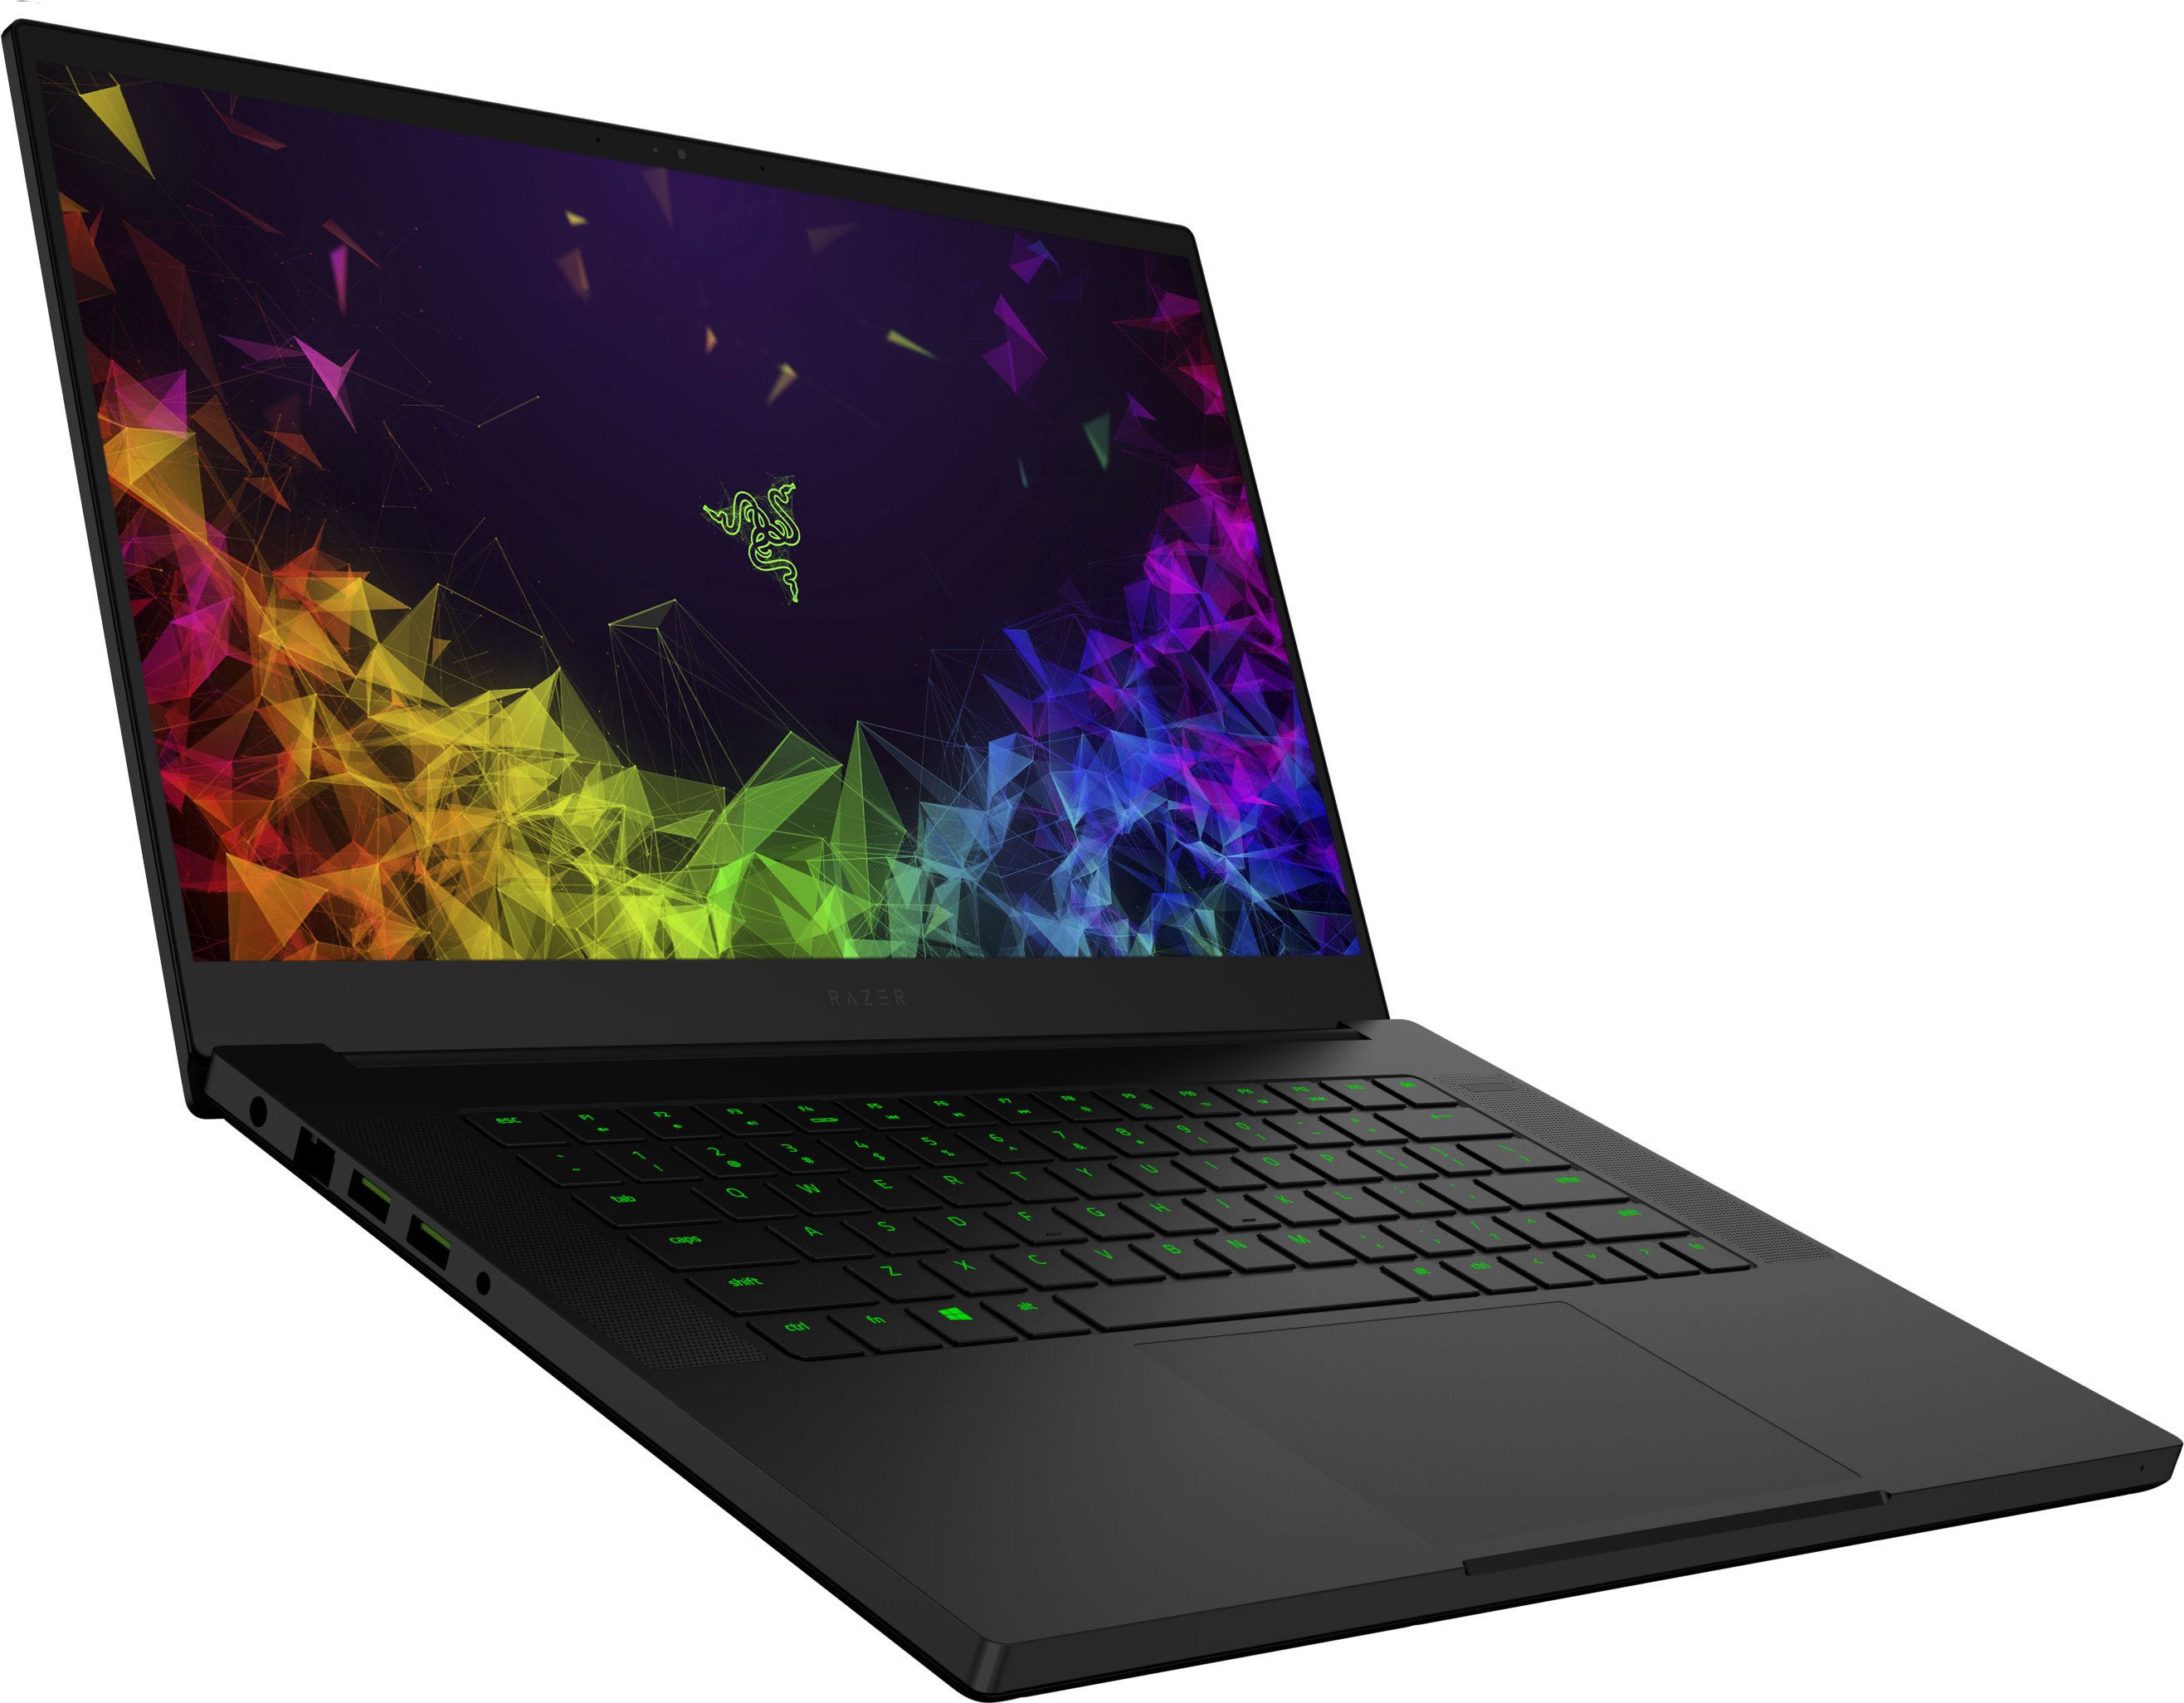 razer blade 15 un ordinateur portable taill pour le gaming fiche technique prix et date de. Black Bedroom Furniture Sets. Home Design Ideas